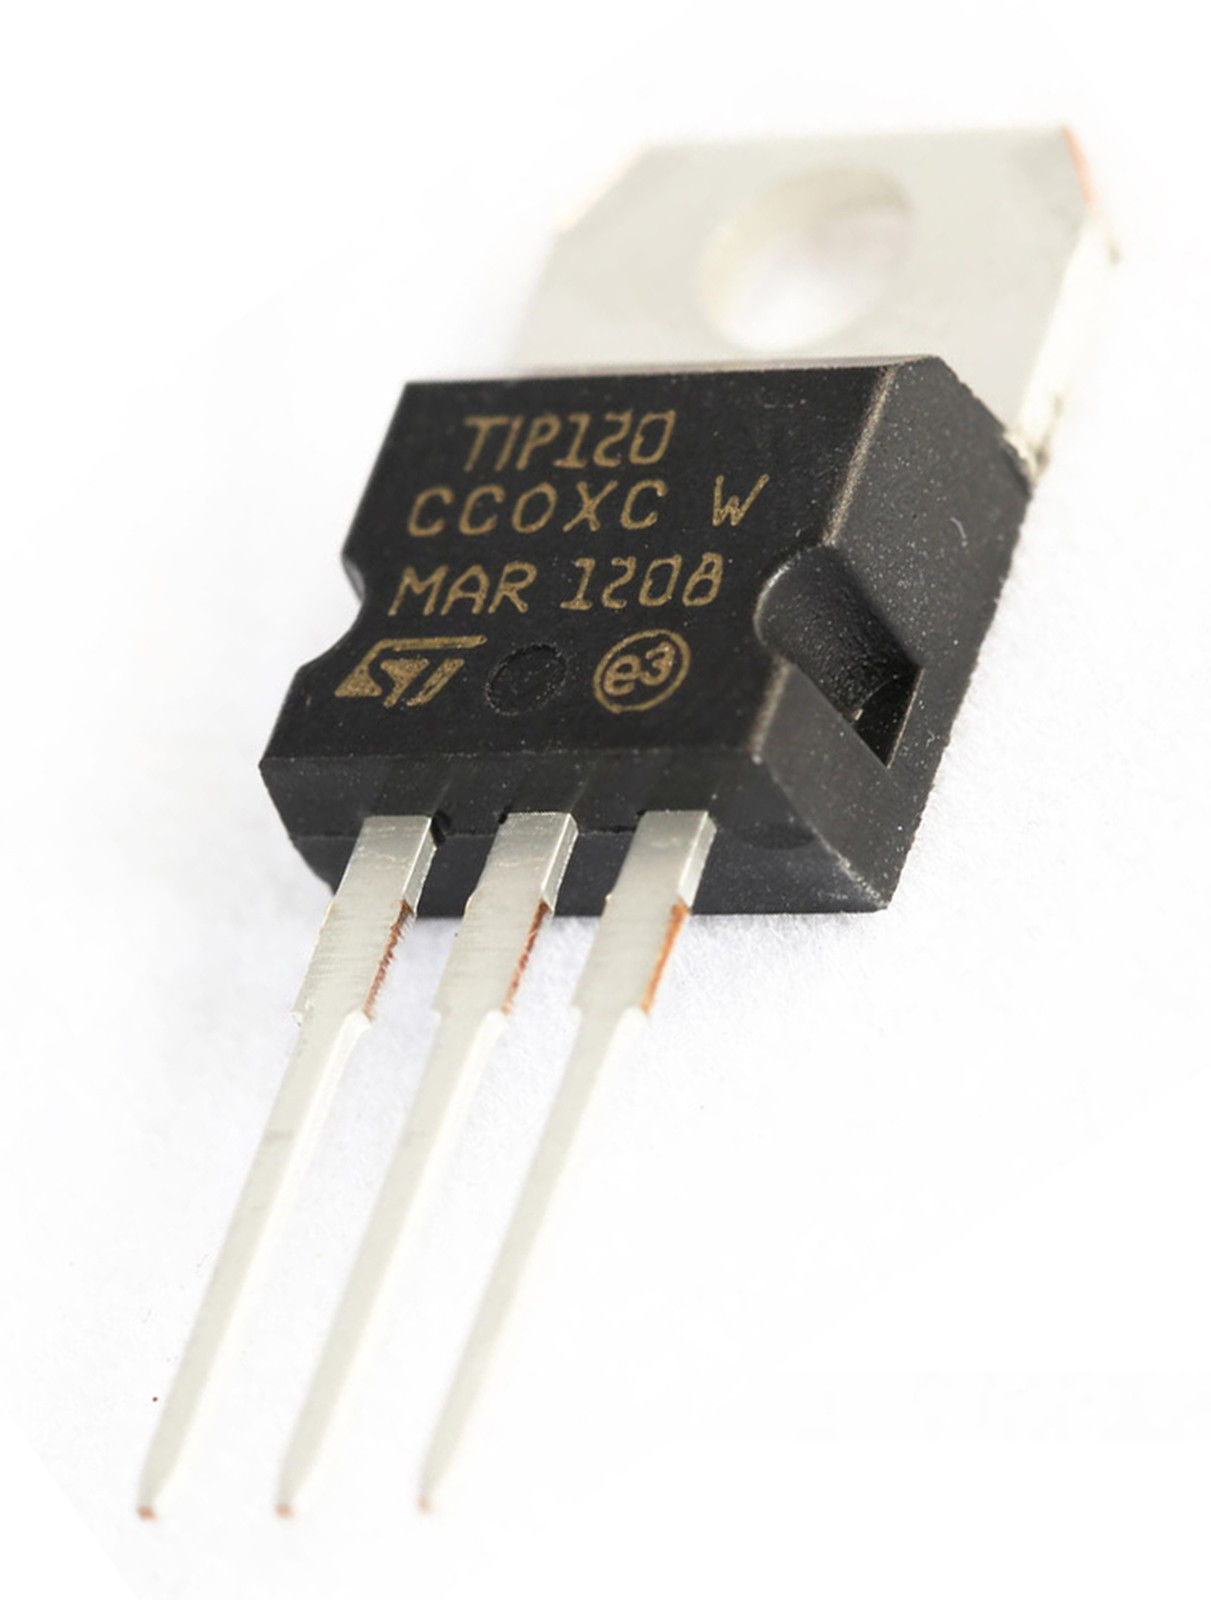 Current Gain In Darlington Pair Transistor Circuit